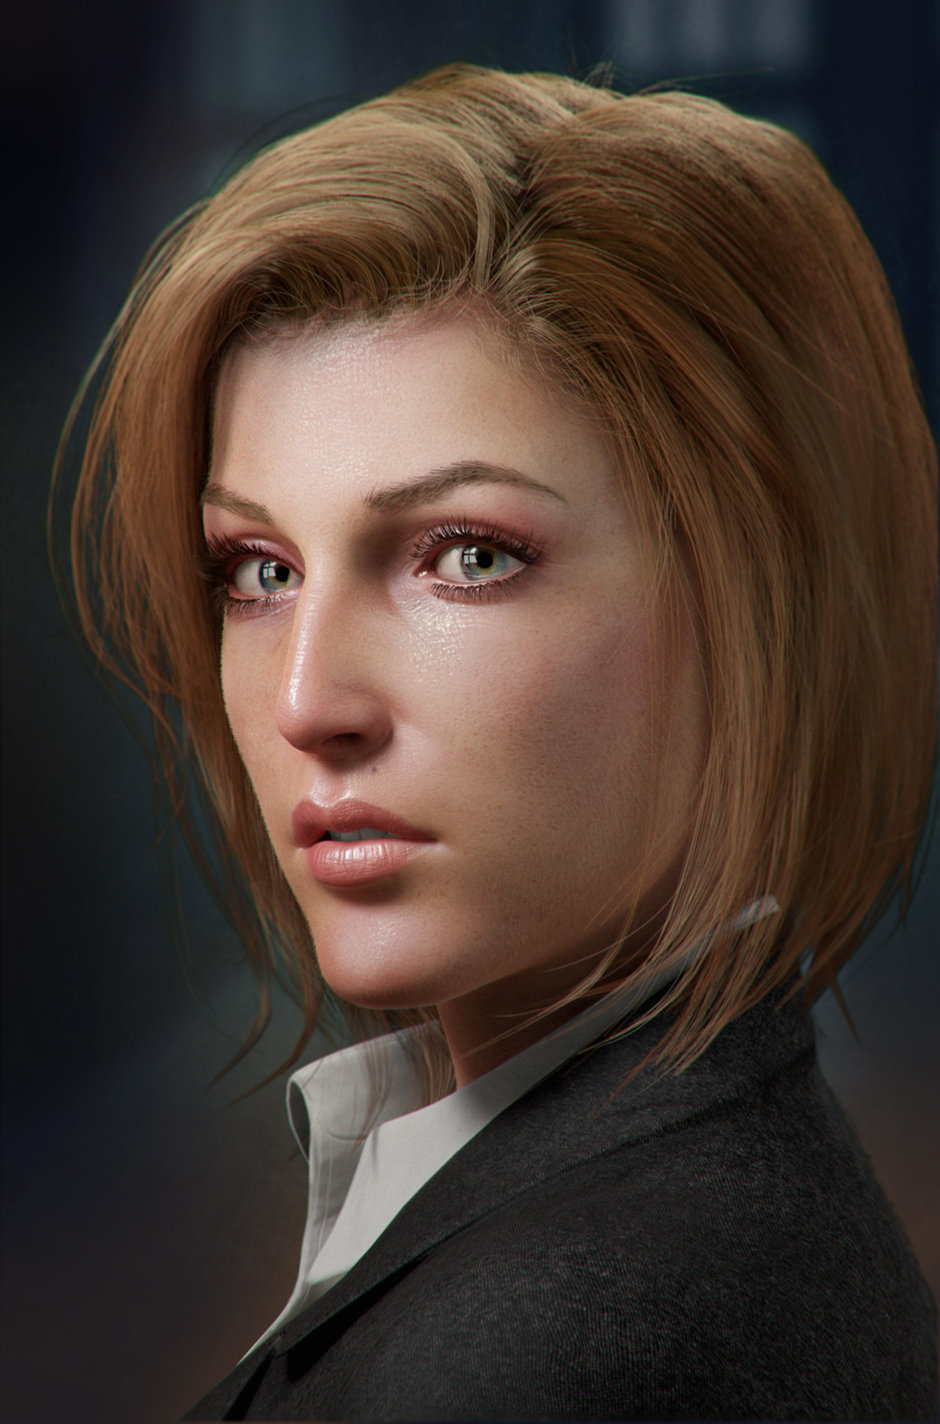 jeen-lih-lun-scully-render-s.jpg